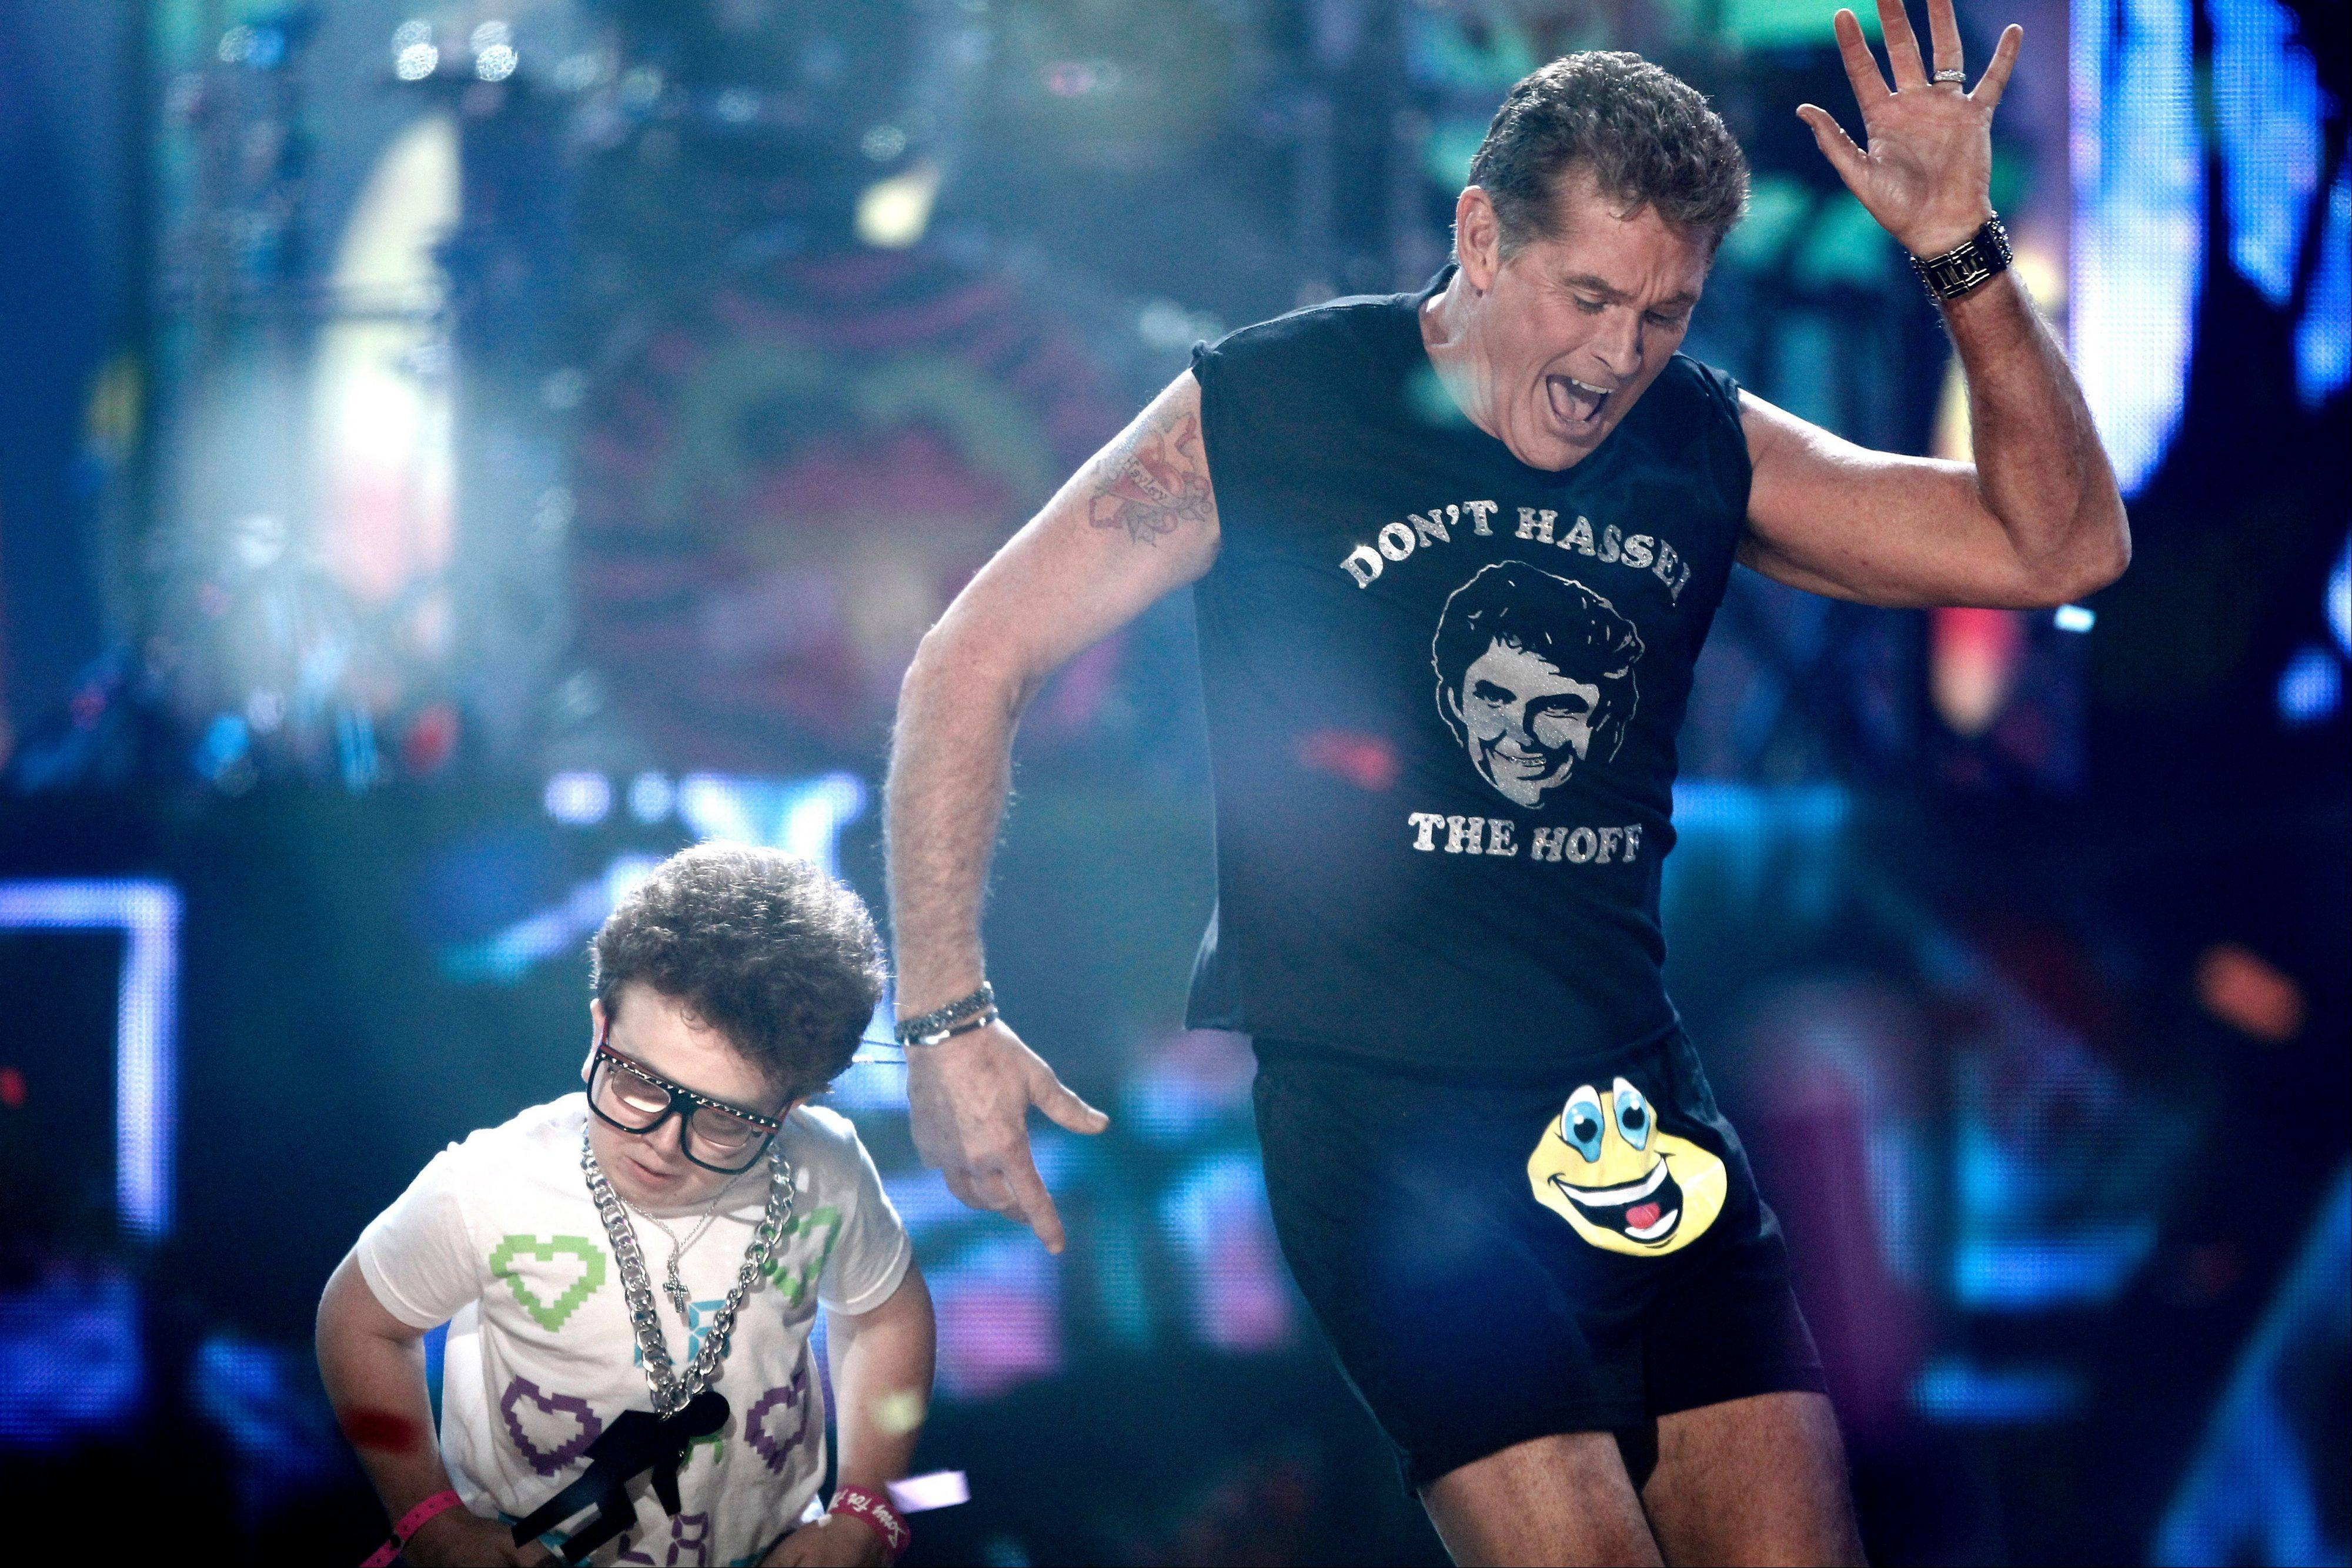 David Hasselhoff, right, and Keenan Cahill dance onstage while LMFAO performs at the 39th Annual American Music Awards on Sunday, Nov. 20, 2011 in Los Angeles.